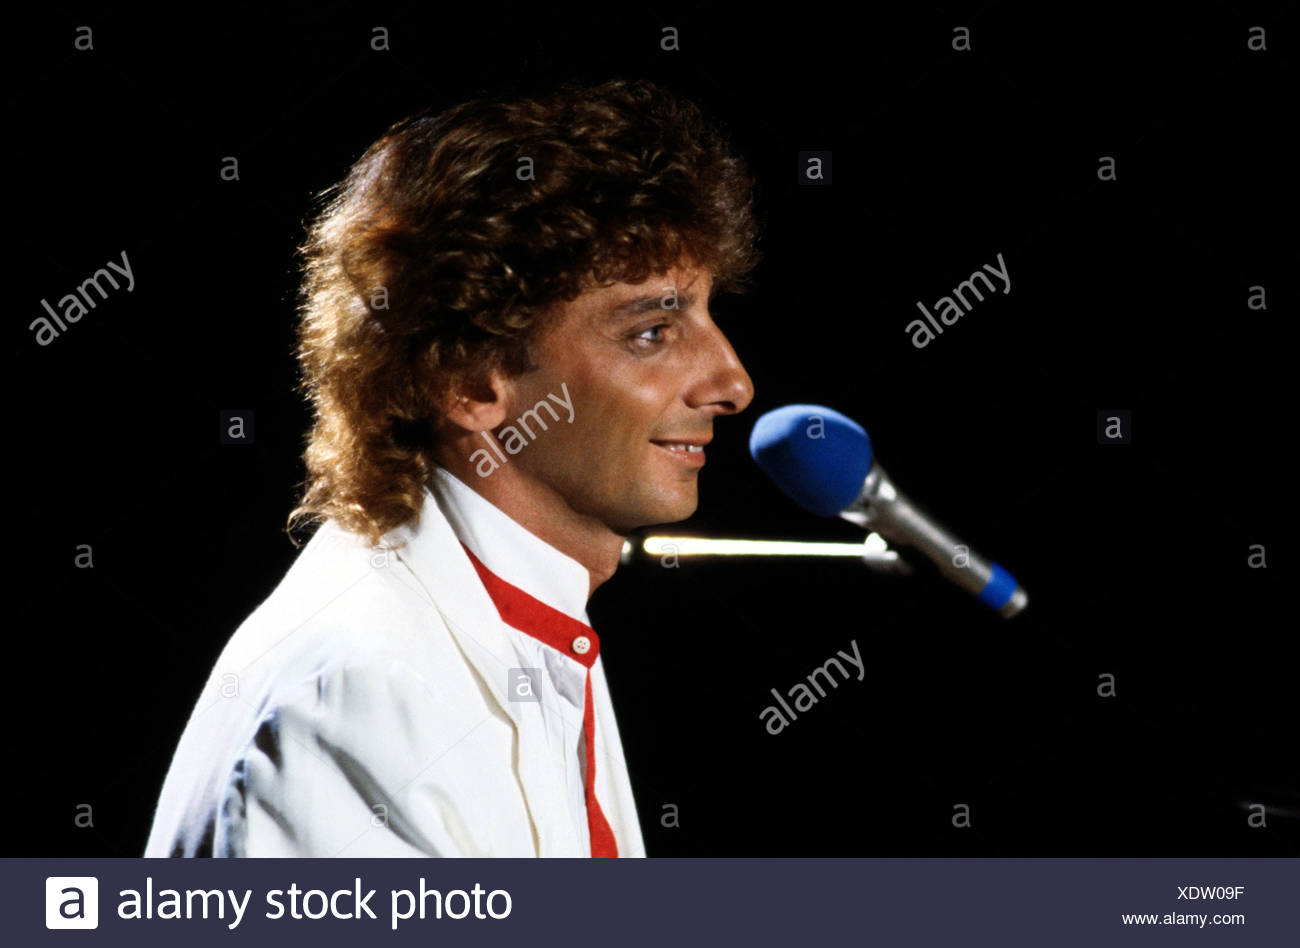 Manilow, Barry (born Barry Alan Pincus), * 17.6.1946, US musician, portrait, during a concert, 1983, Additional-Rights-Clearances-NA - Stock Image